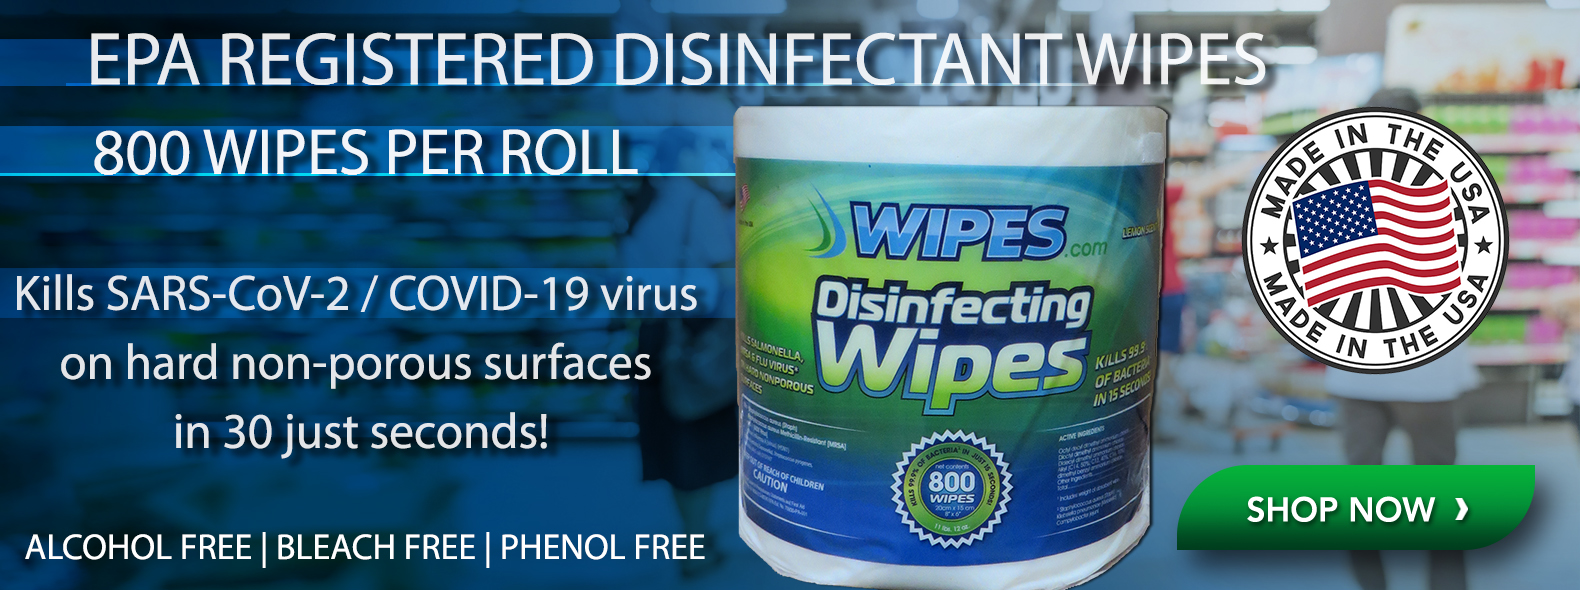 Show EPA Registered Disinfectant Wipes Today